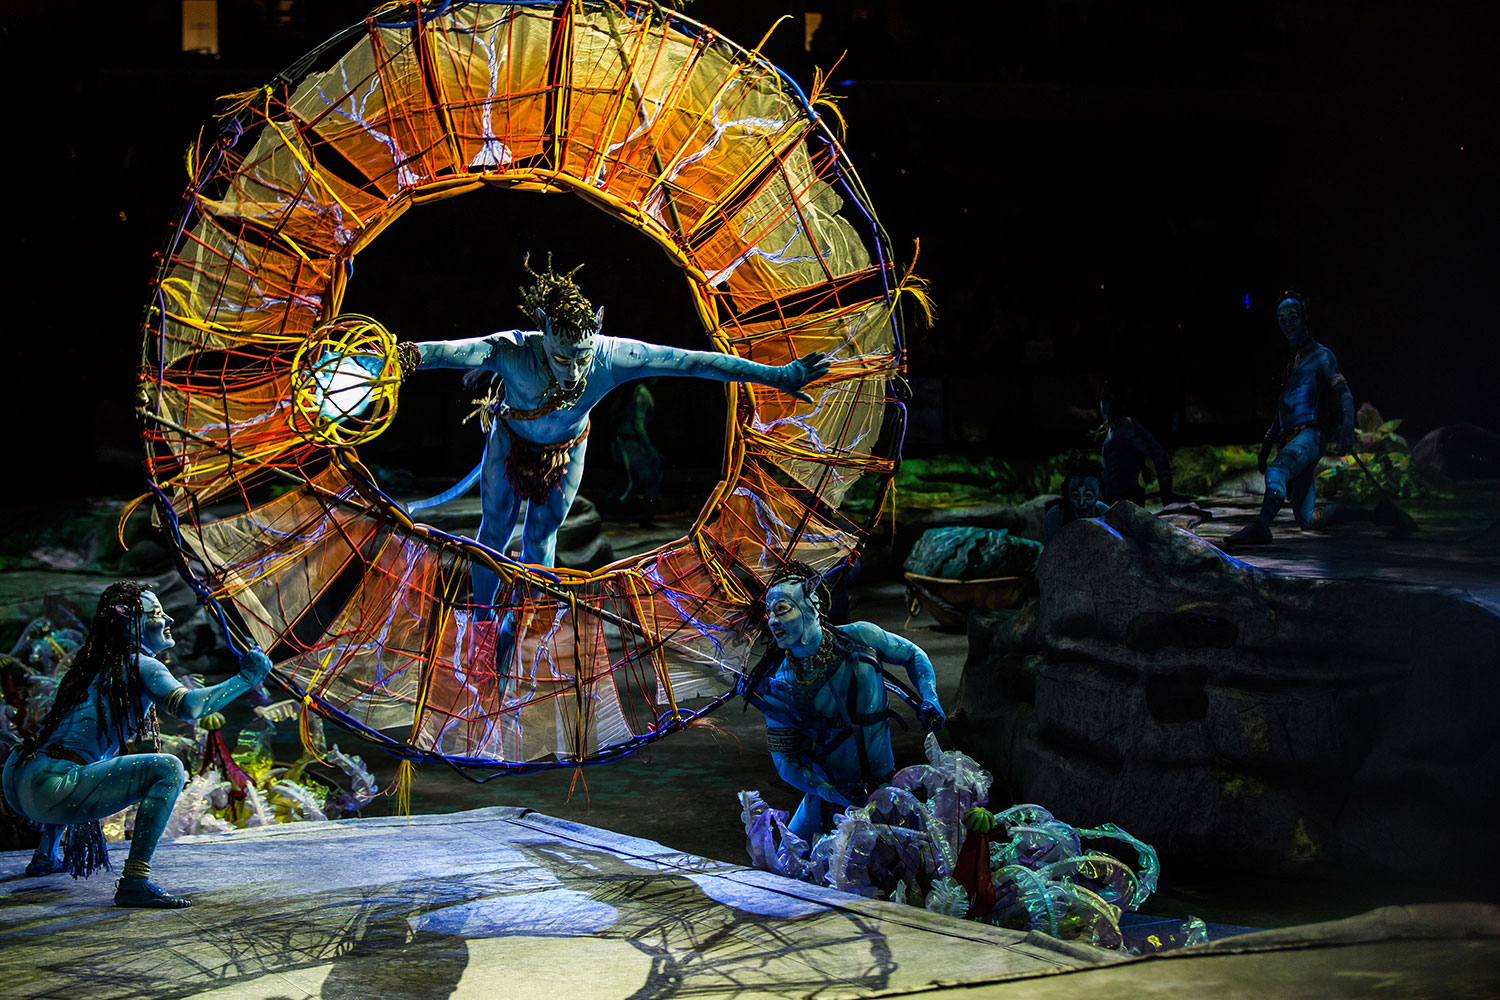 Inspired by James Cameron's AVATAR, TORUK - The First Flight by Cirque du Soleil opens in Singapore in May 2018!